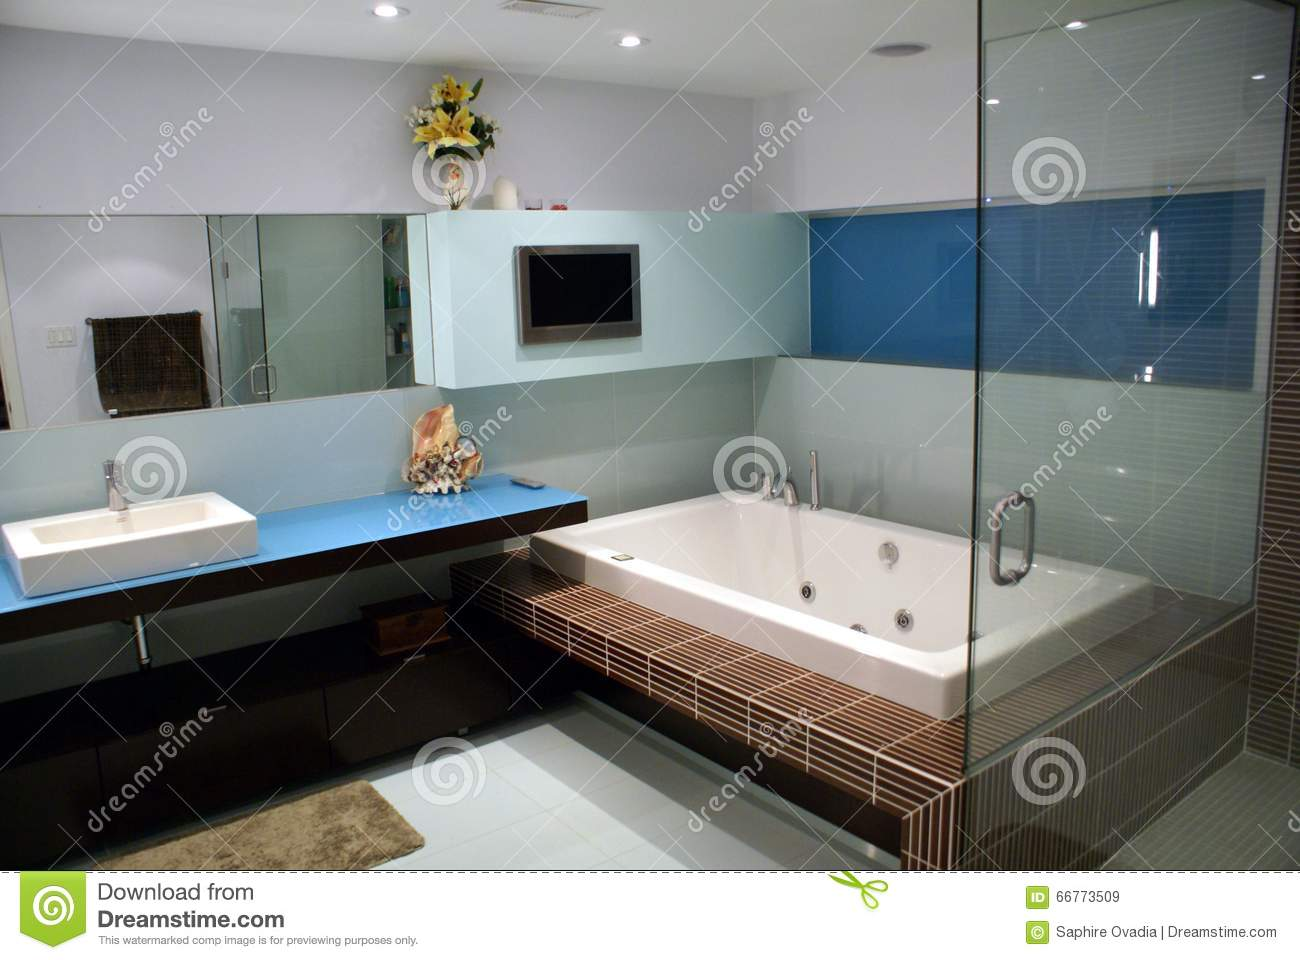 Jacuzzi. Hot Tub. Bath. Spa Stock Image - Image of details, objects ...